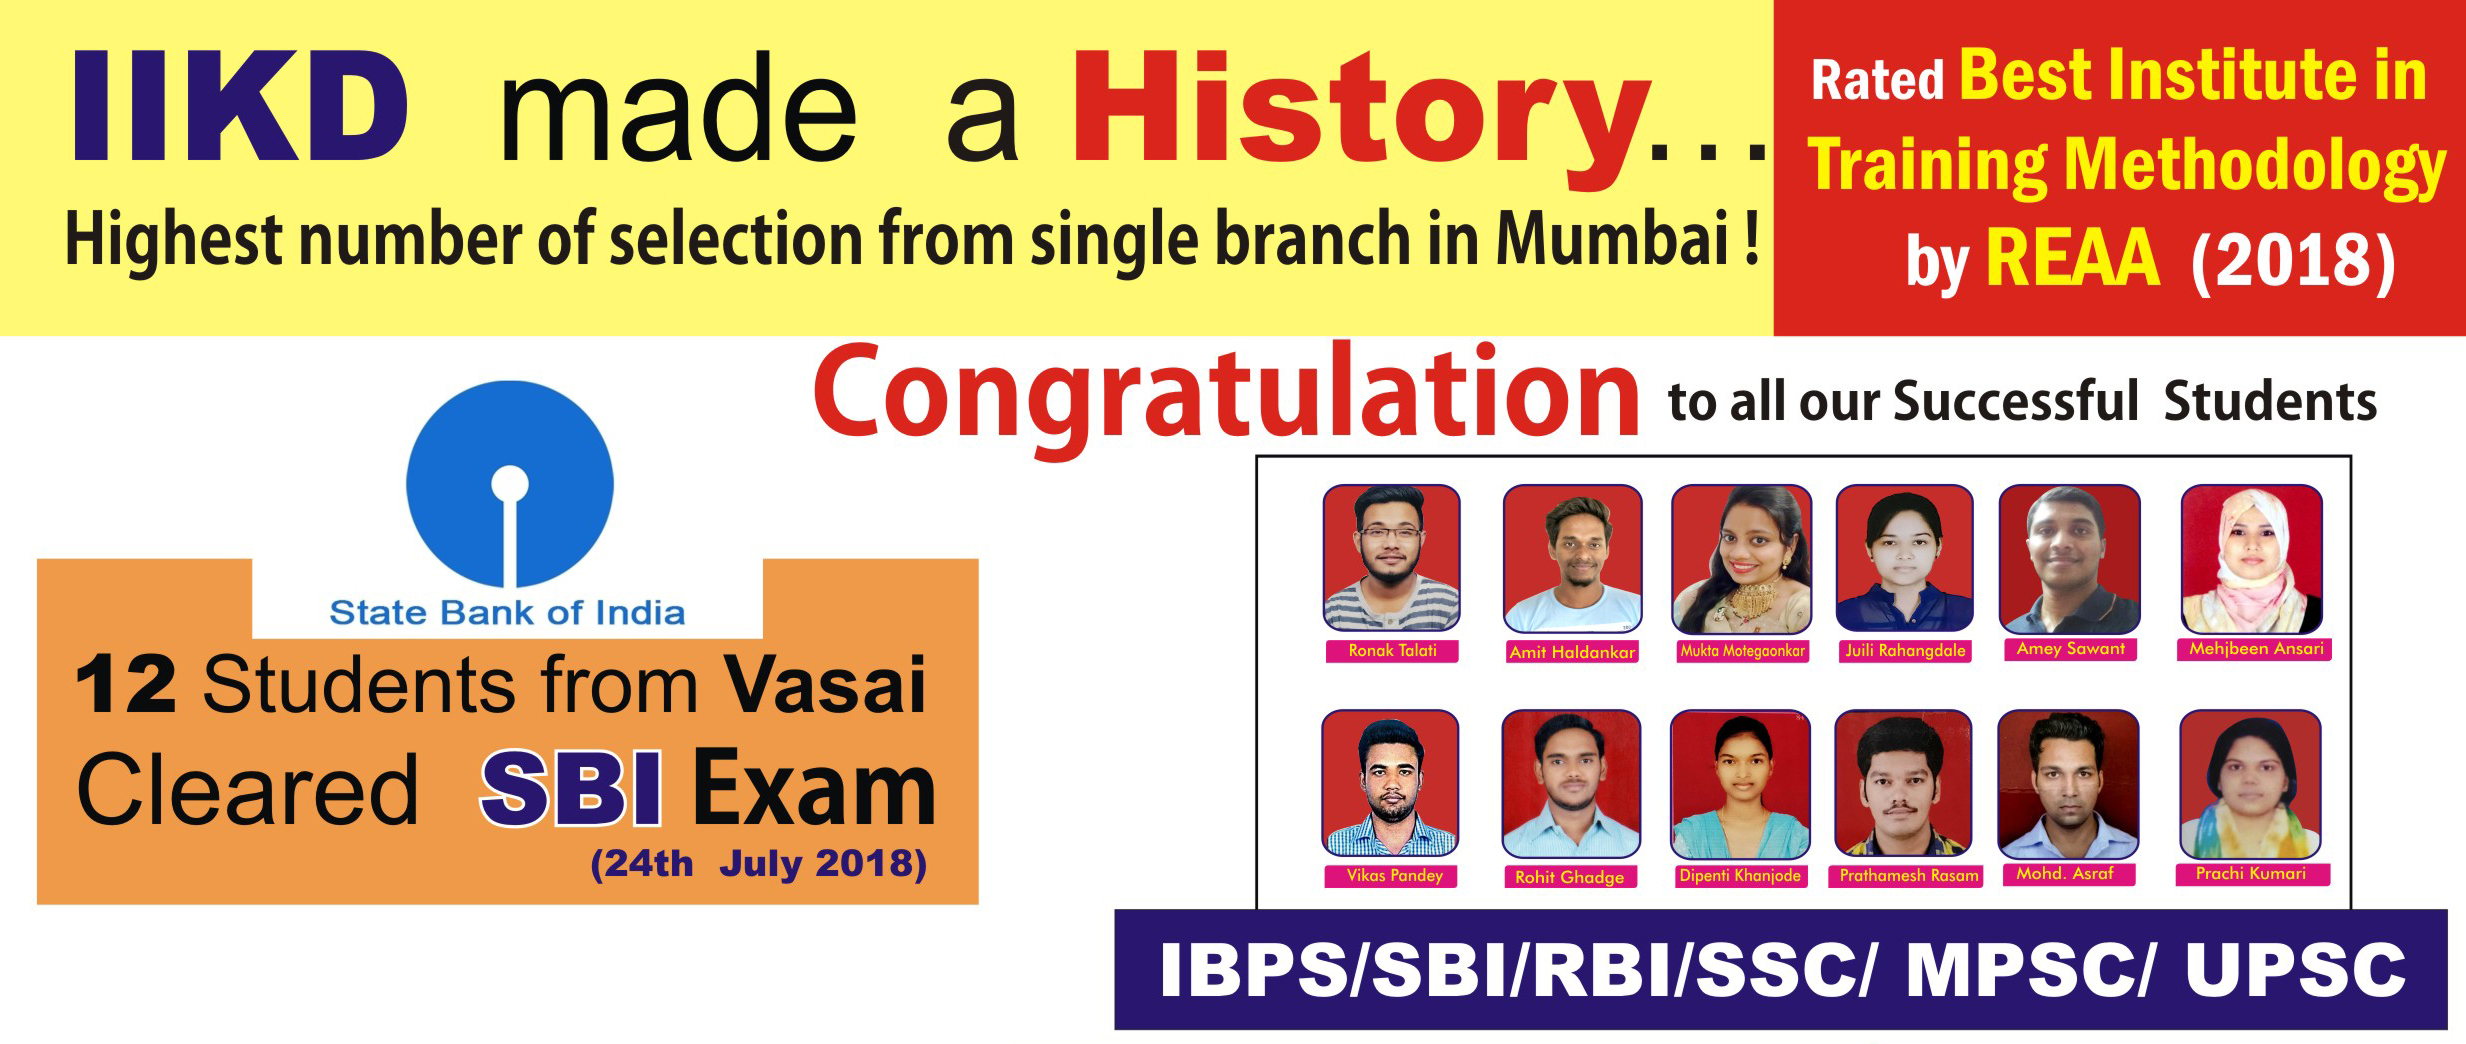 IIKD is providing the best coaching for bank exam, ibps exams, all bank competitive exams rrb exams, ssc competitive exam in vasai, virar, and nalasopara.